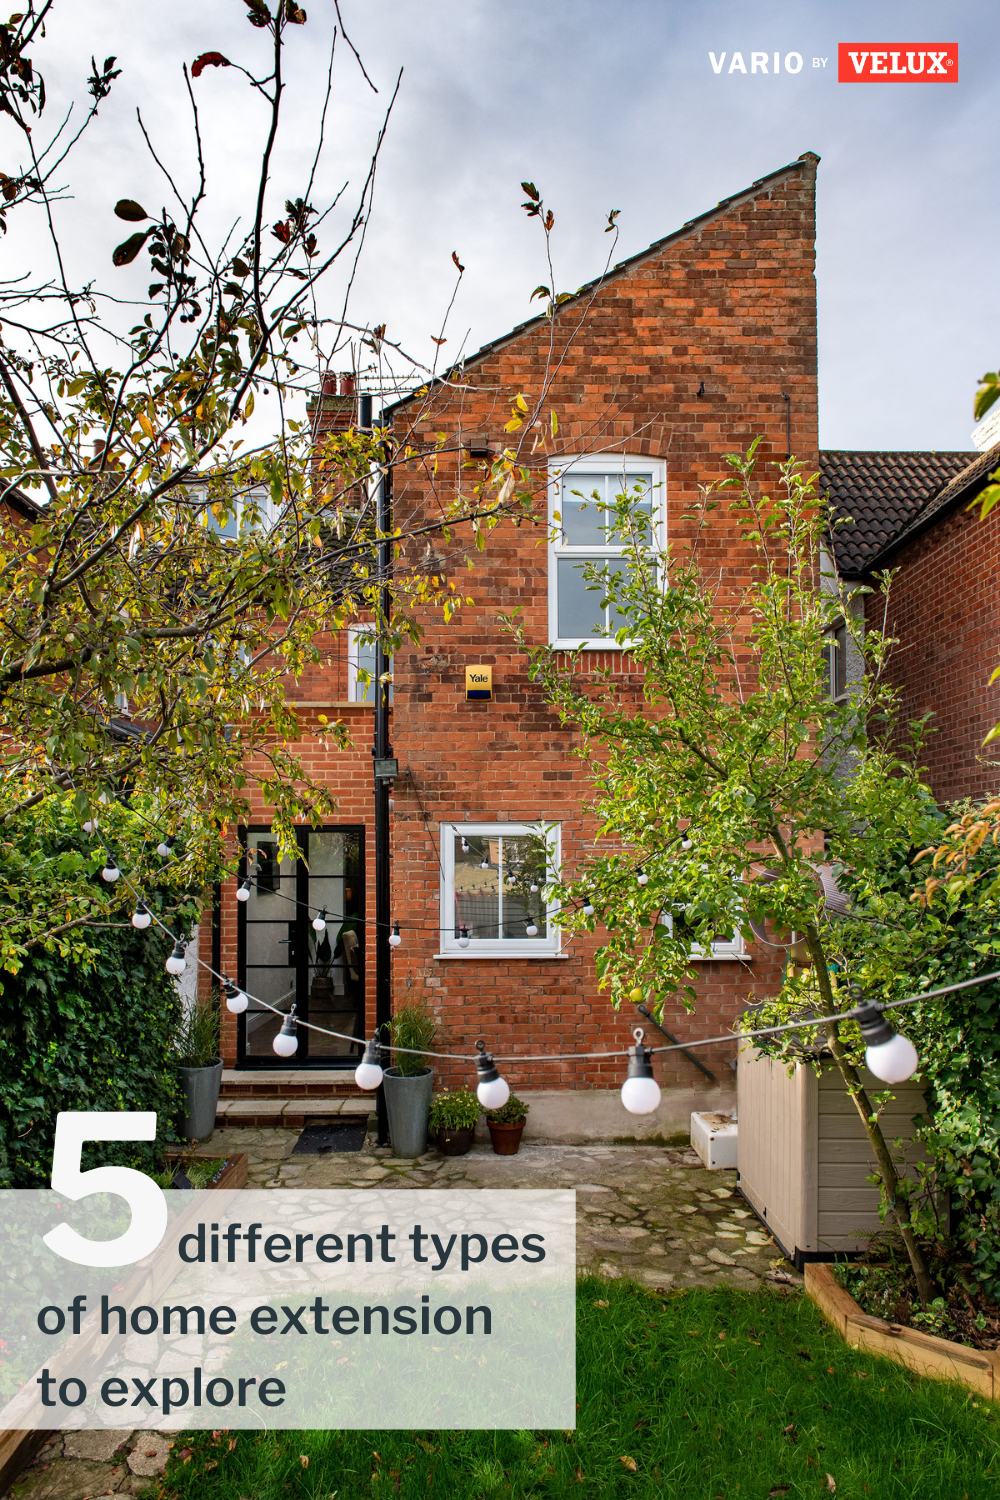 You need more space, but you don't want to move. Enter the house extension, modern Britain's answer to all your cramped home woes. But not all home extensions are created equal. Did you know that there are 5 different main styles of extension to choose from? #extension #houseextension #homeimprovements #extensionideas #renovation #reno #variobyvelux #velux